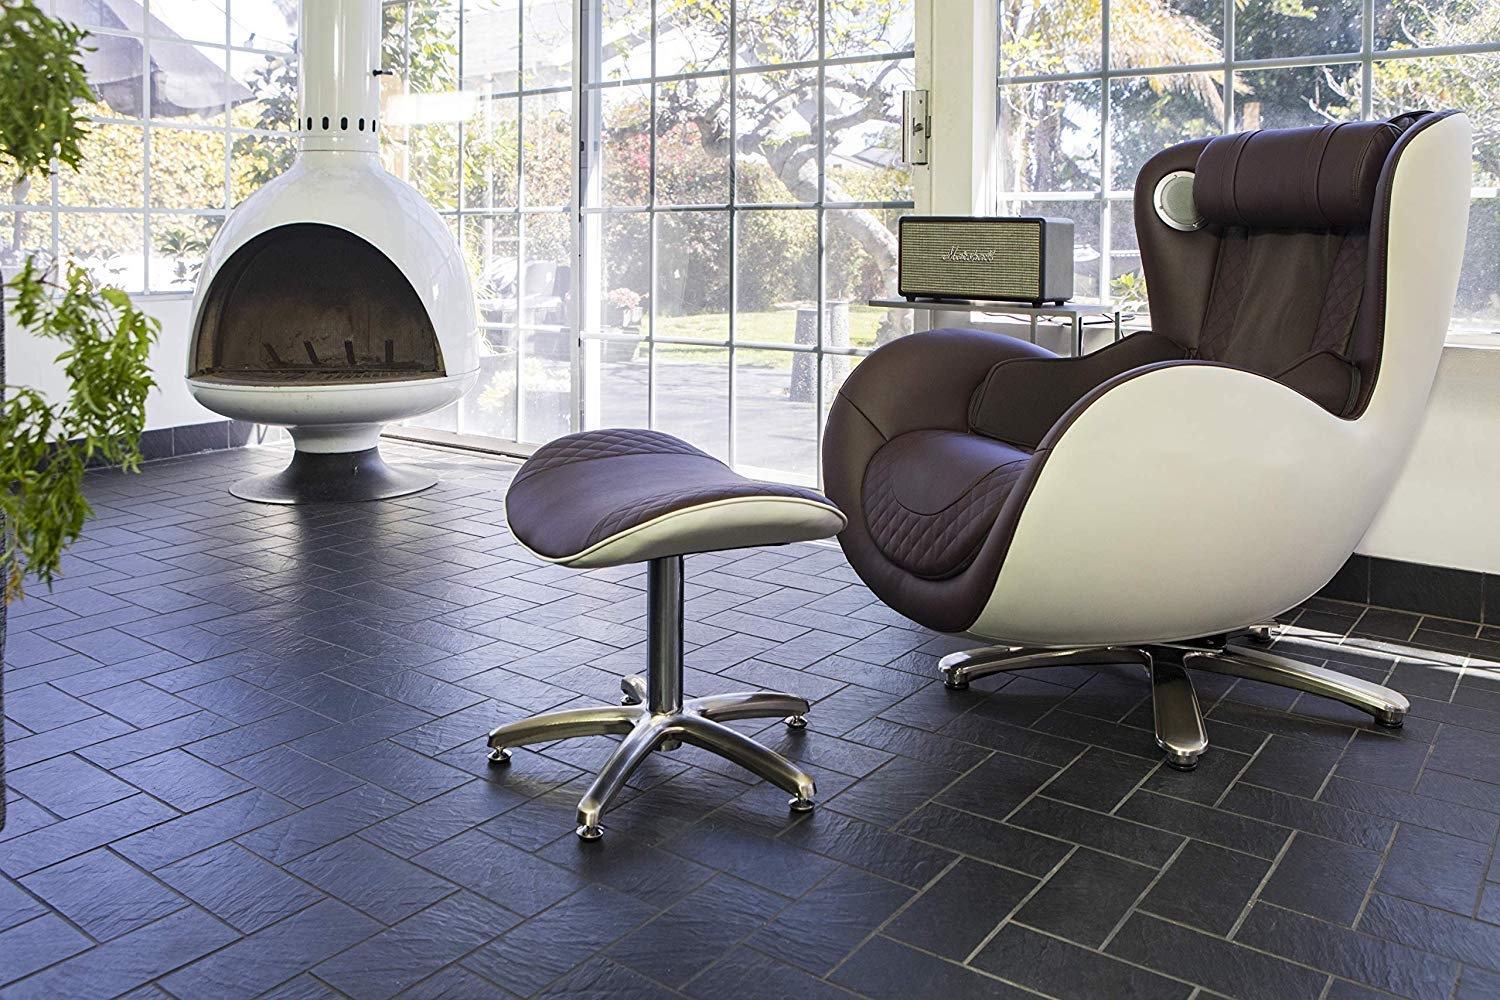 NOUHAUS Massage Chair with Ottoman